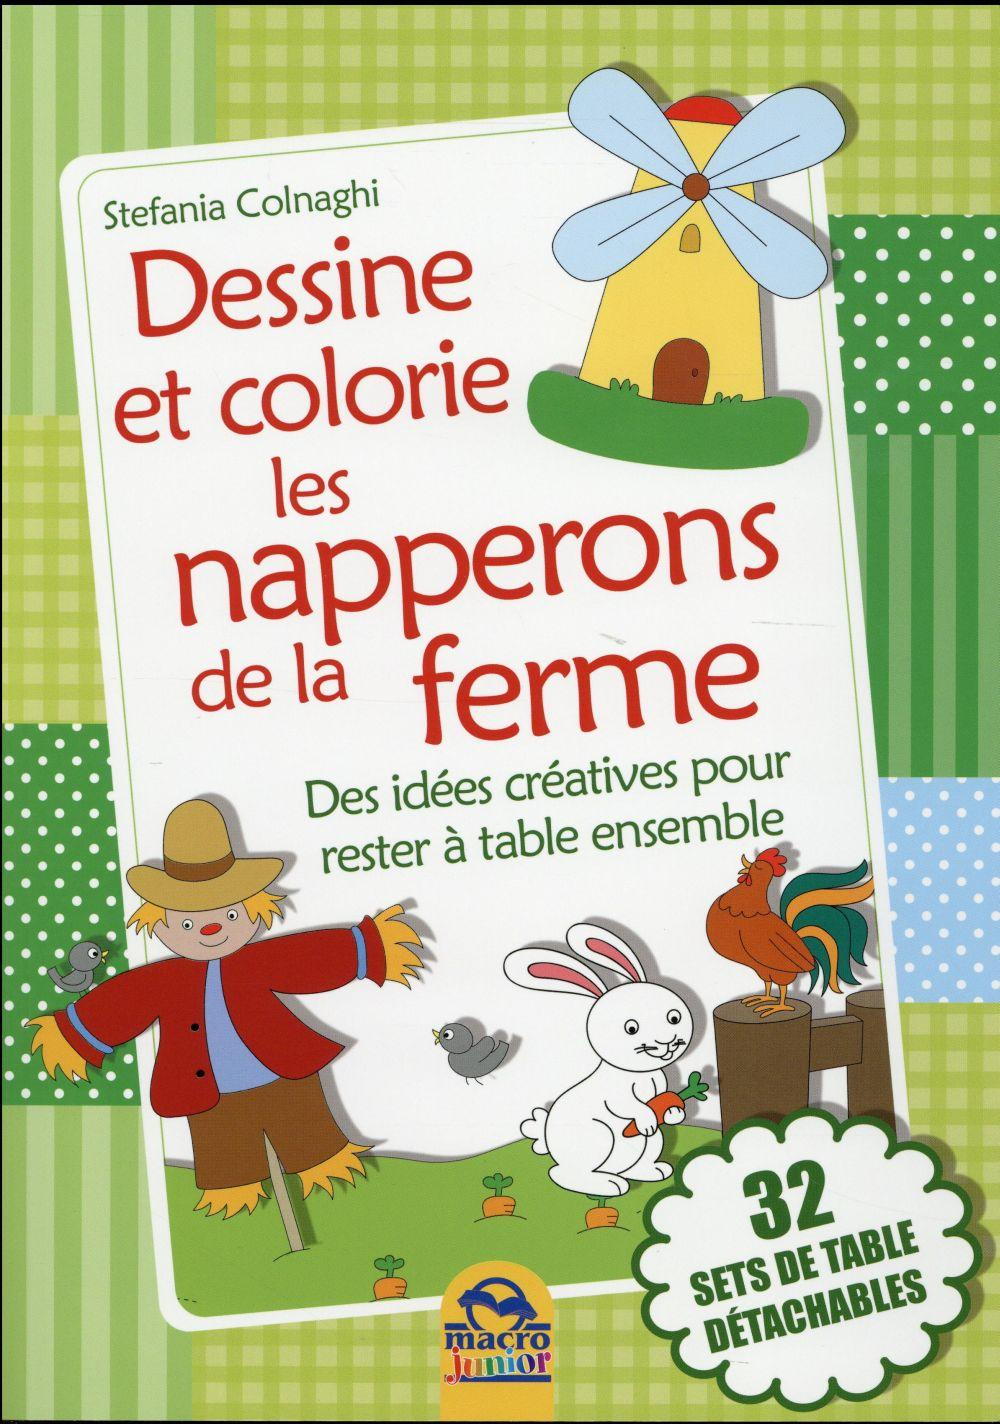 Vente Livre :                                    Dessine et colorie les napperons de la ferme ; des idées créatives pour rester à table ensemble ; 32 sets de table détachables                                      - Stefania Colnaghi